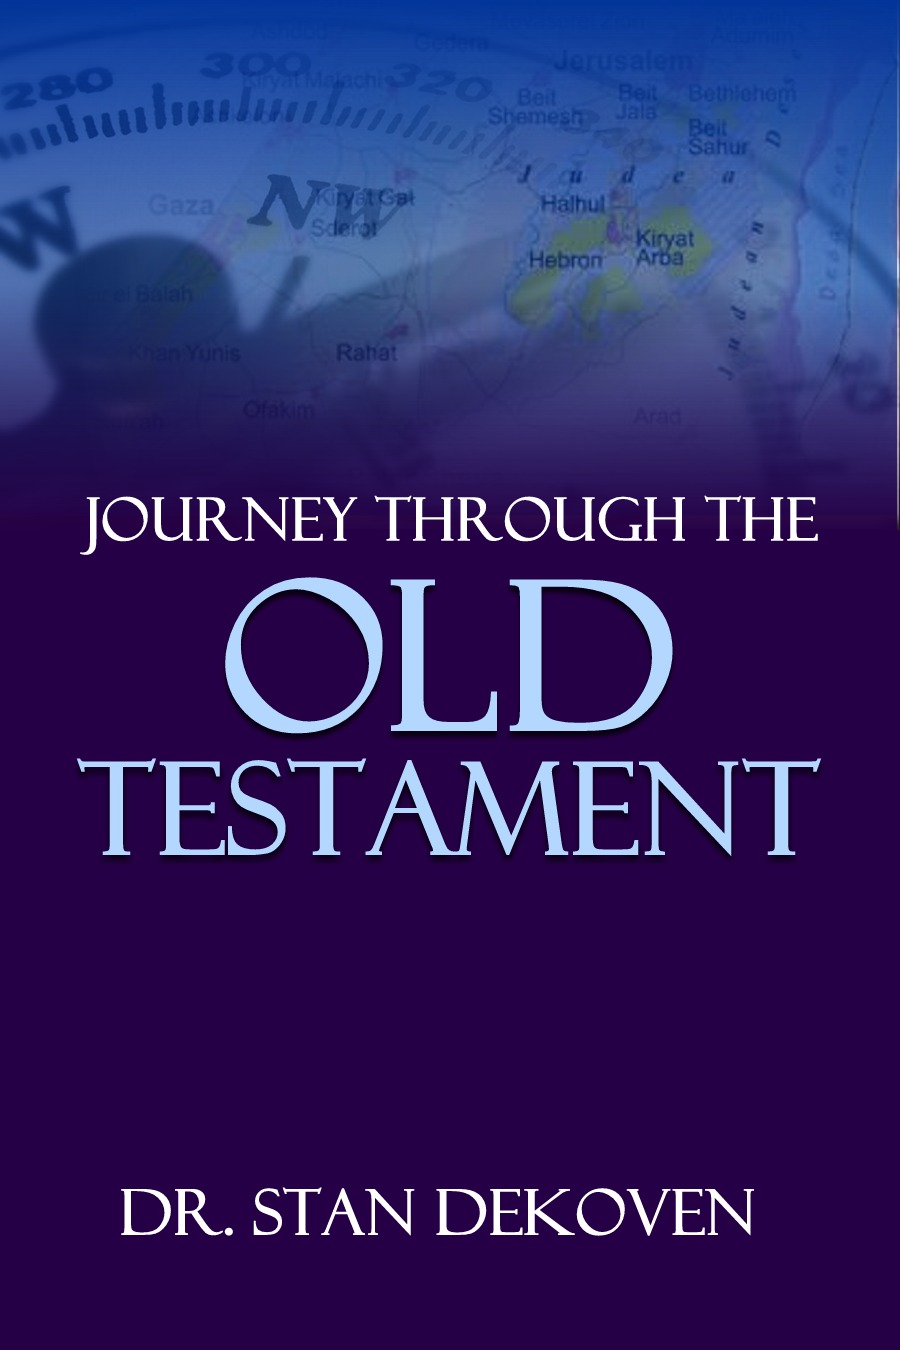 book review journey through the old testament Book review: knowing jesus through the old testament  introduction christopher wright's book, knowing jesus through the old testament, transports readers through the old testament on a journey to find the heart and mind of jesuswright is a prolific writer with a phd from cambridge and currently the director of international ministries for lanham partnership international.